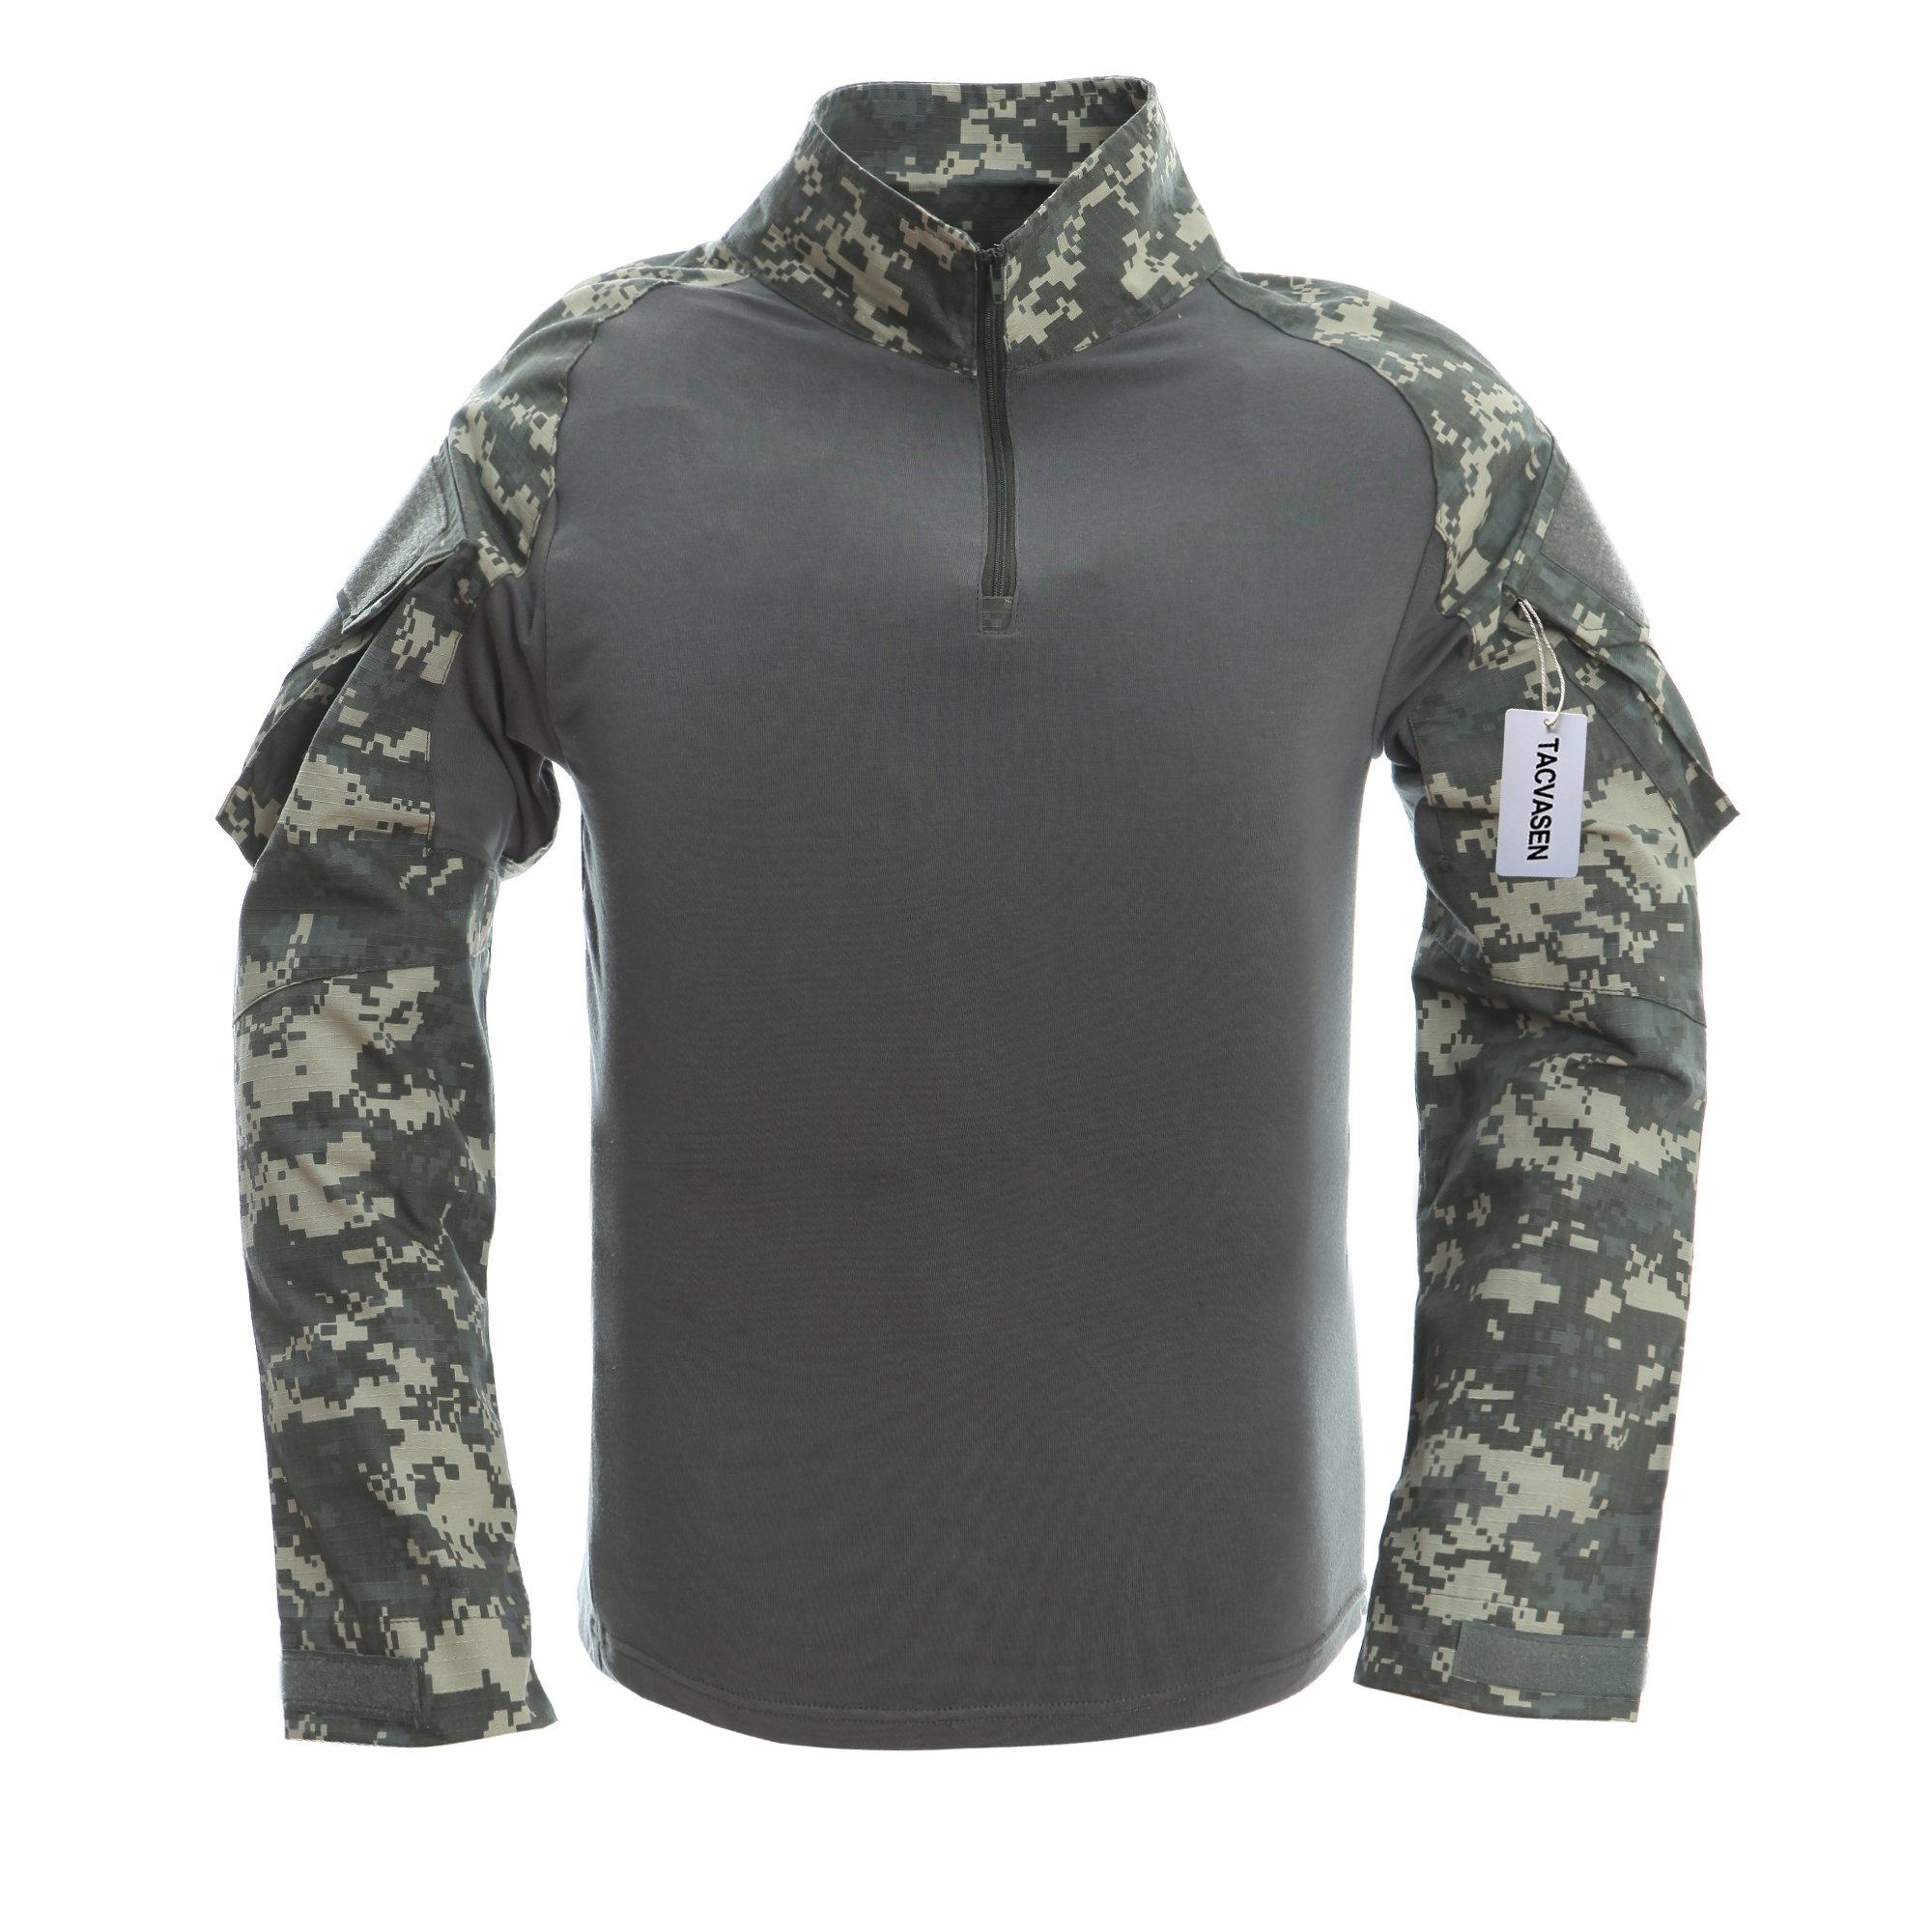 83c6fa8f6 TACVASEN Mens Camouflage Camo Active Assault Long Sleeve T-shirt Tops ACU:  Amazon.com: Books